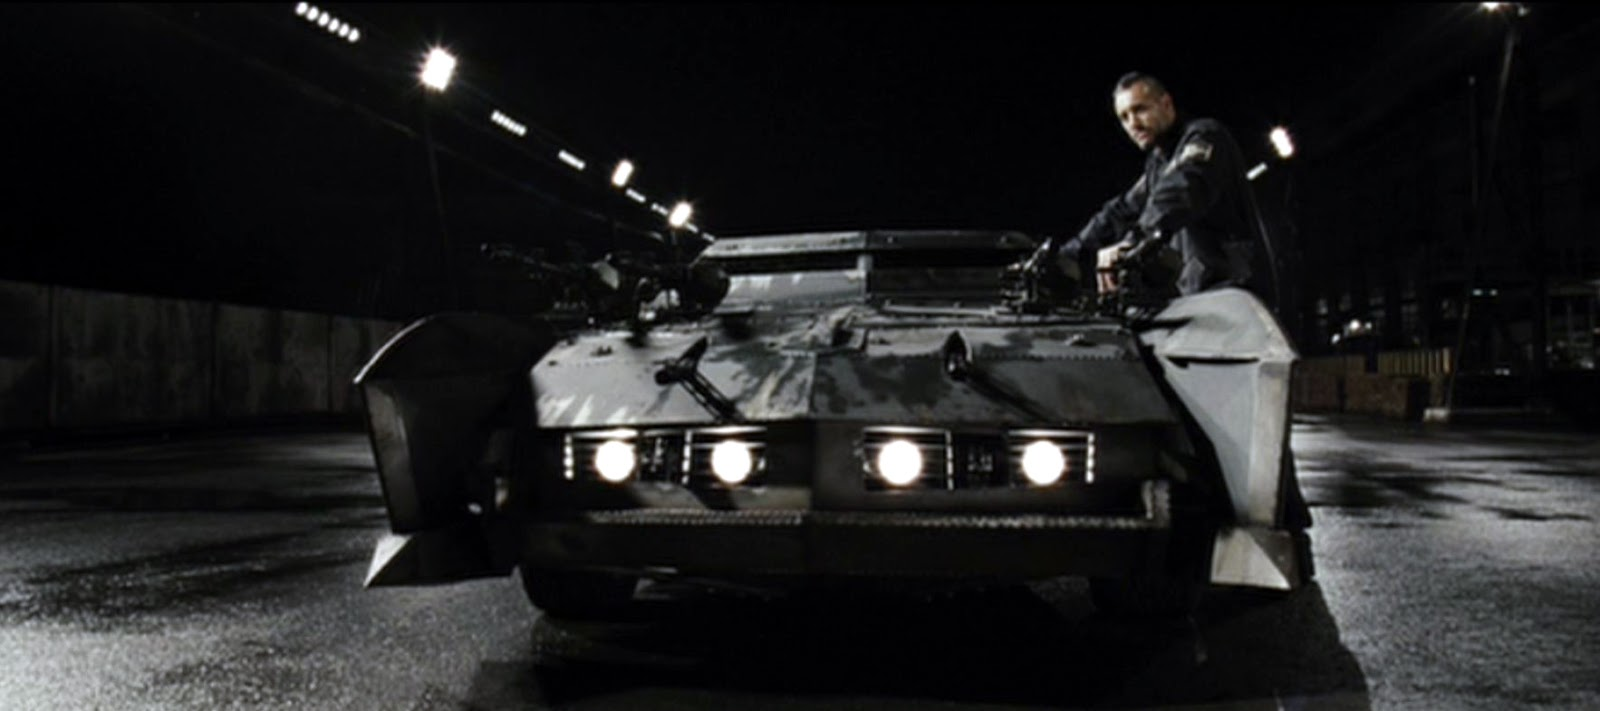 just a car guy: cars from the movie death race, a step closer to